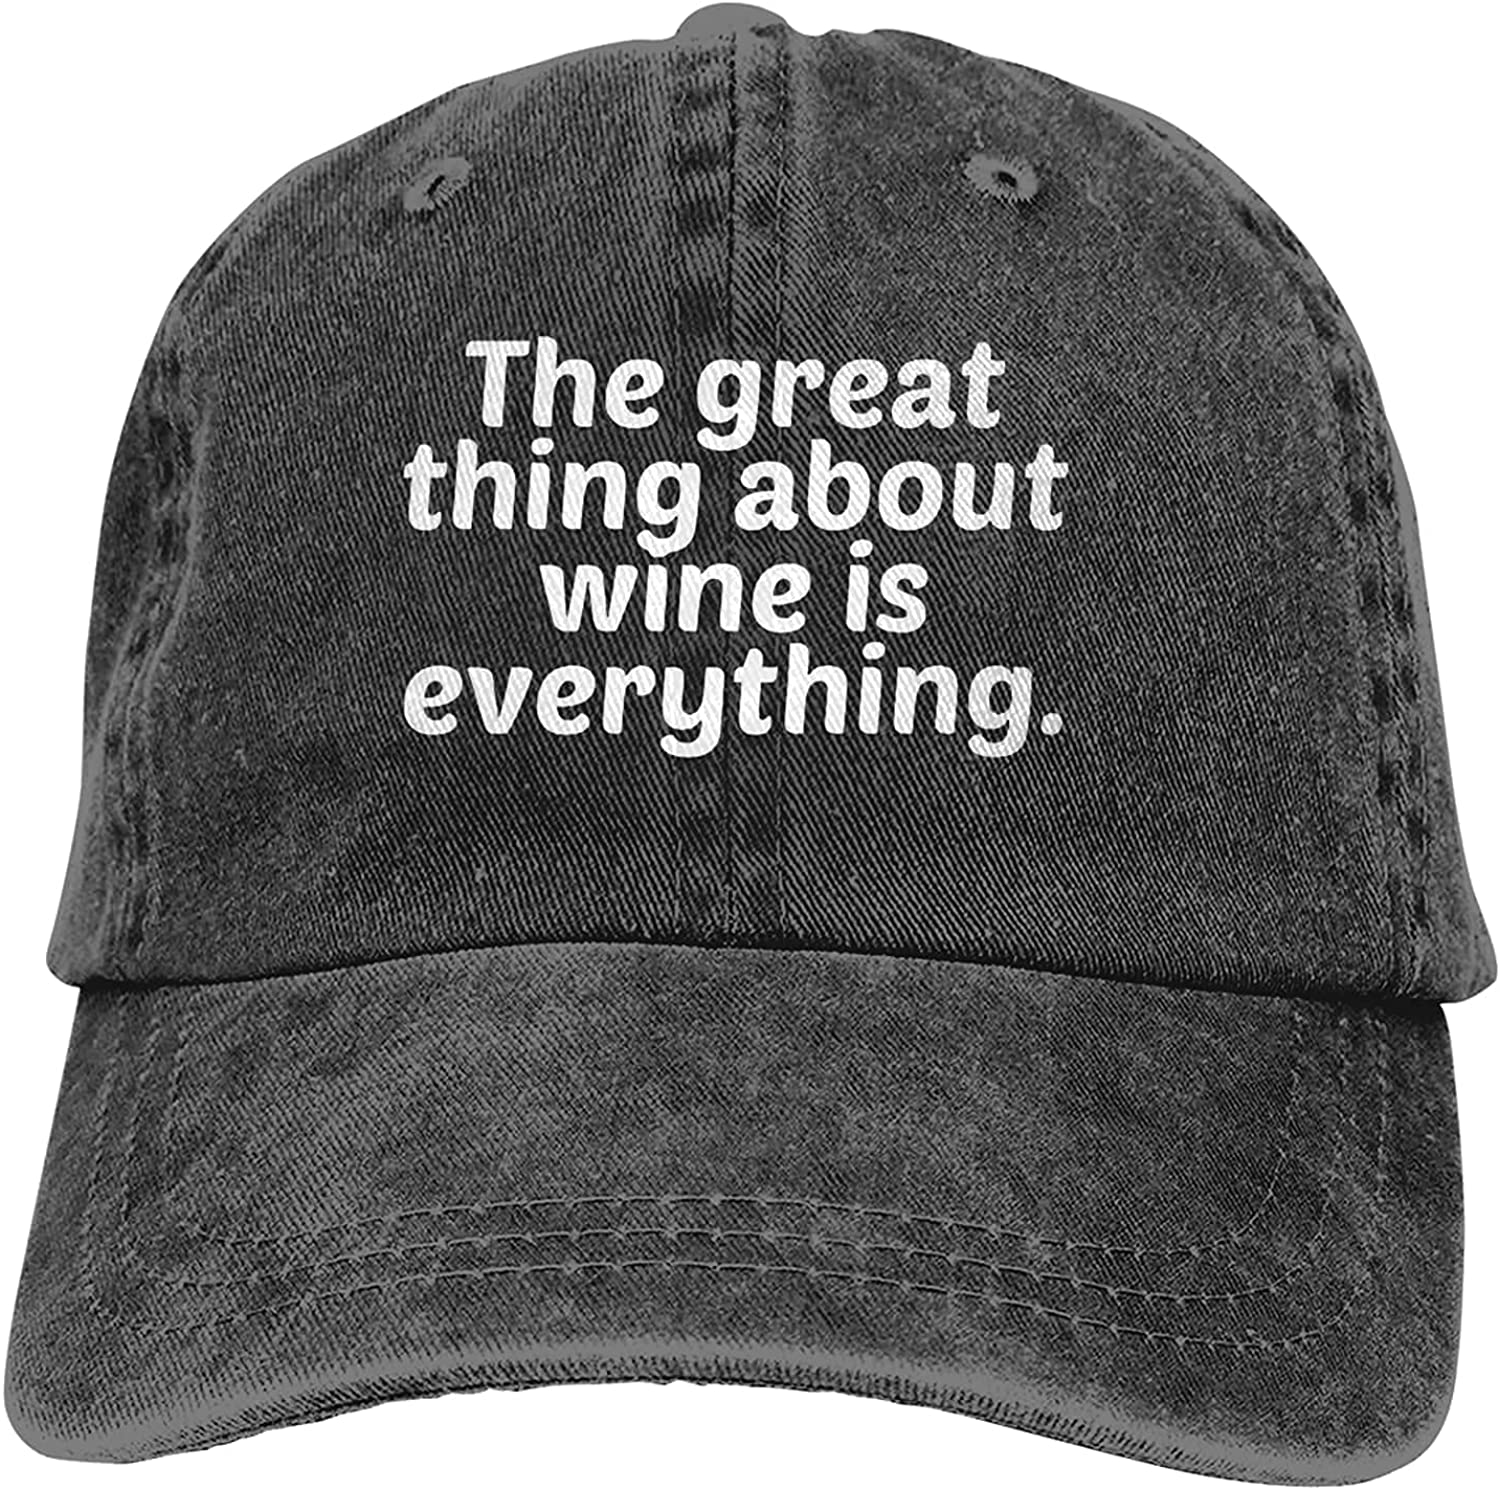 BGWORZD The Great Thing About Wine is Everything Adjustable Washed Dad Hat Cowboy Cap Denim Cap Baseball Cap